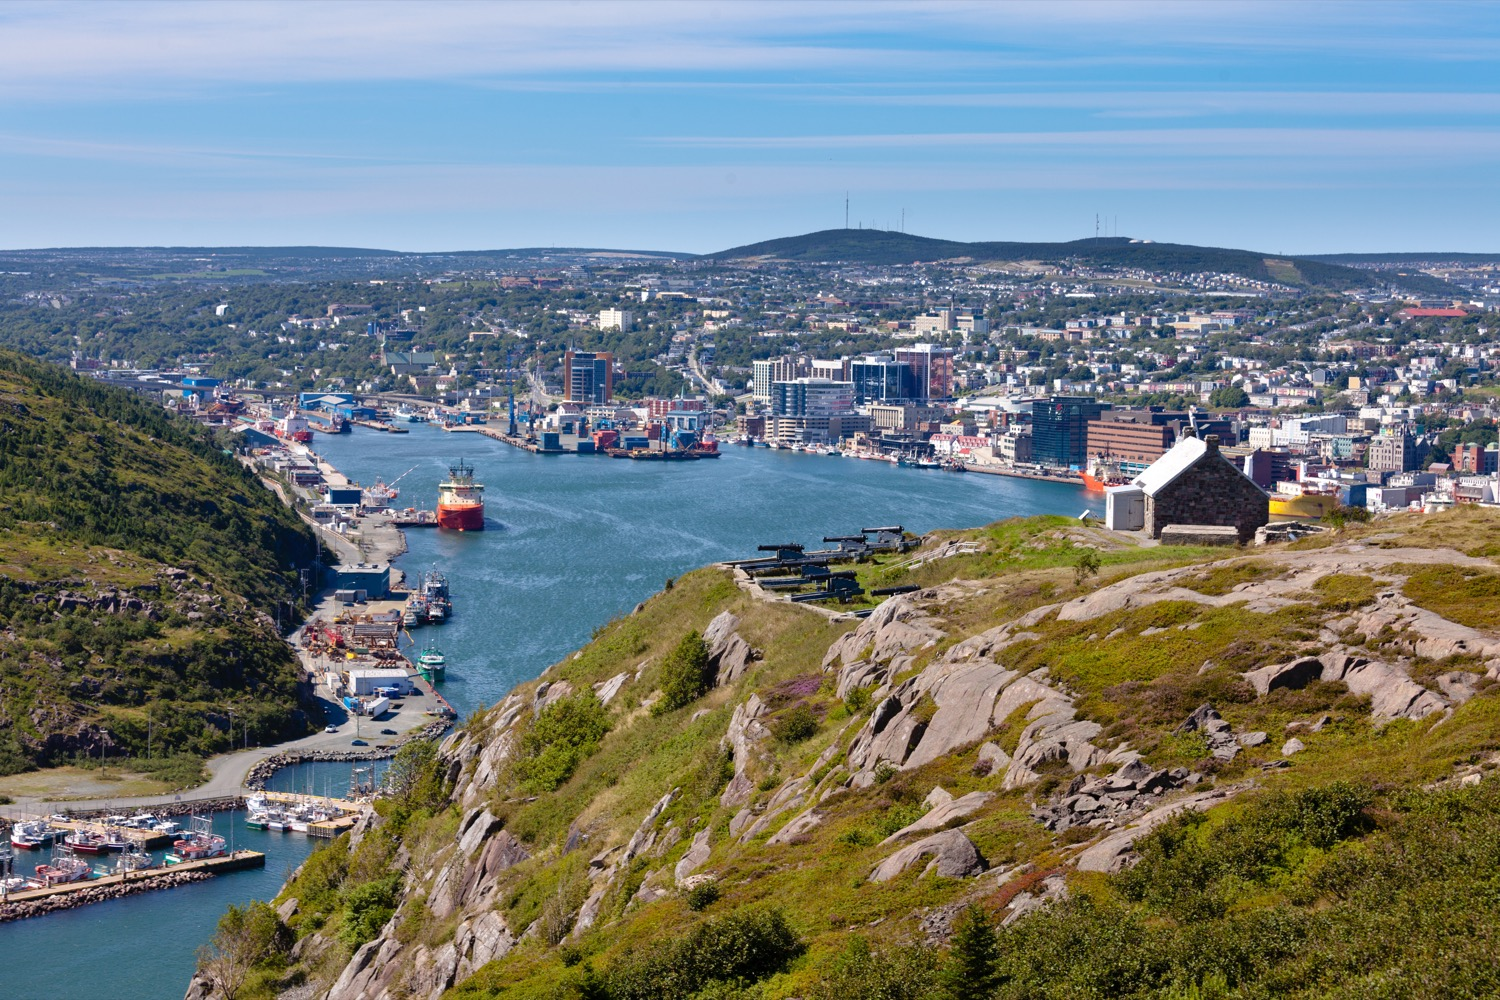 Panoramic view of a city in Newfoundland.